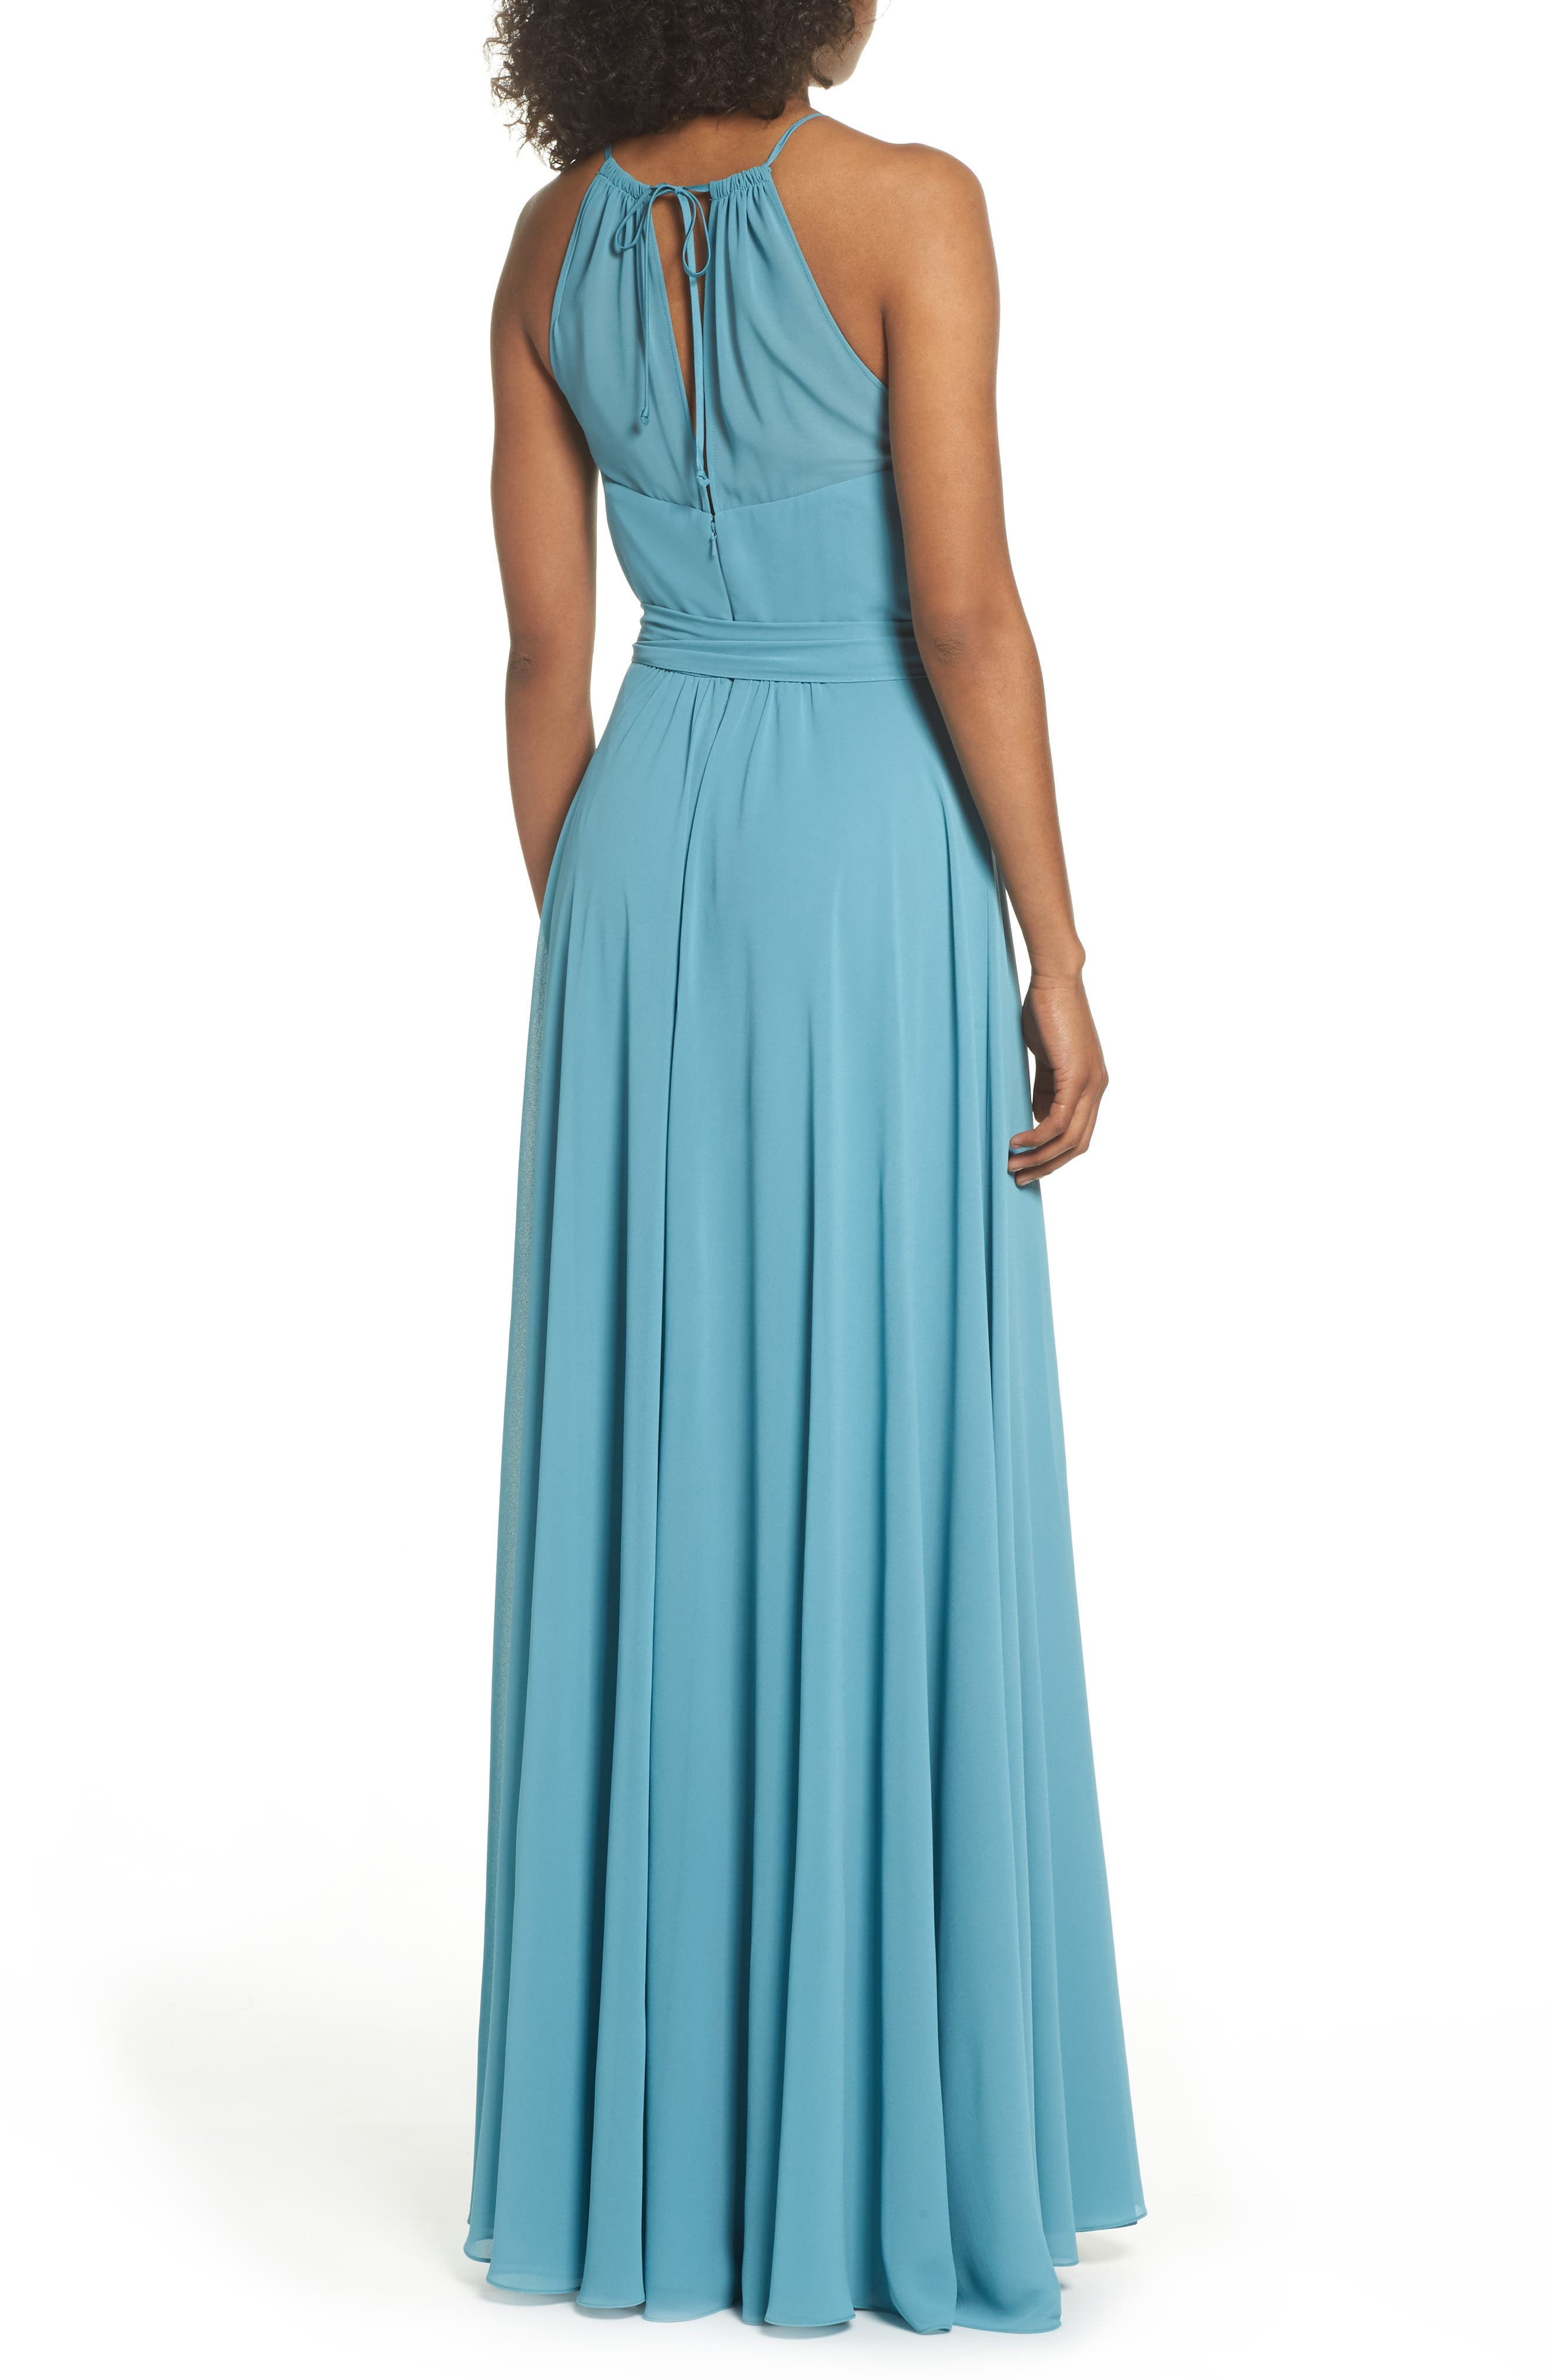 Kyra Chiffon Halter Gown,                             Alternate thumbnail 2, color,                             Teal